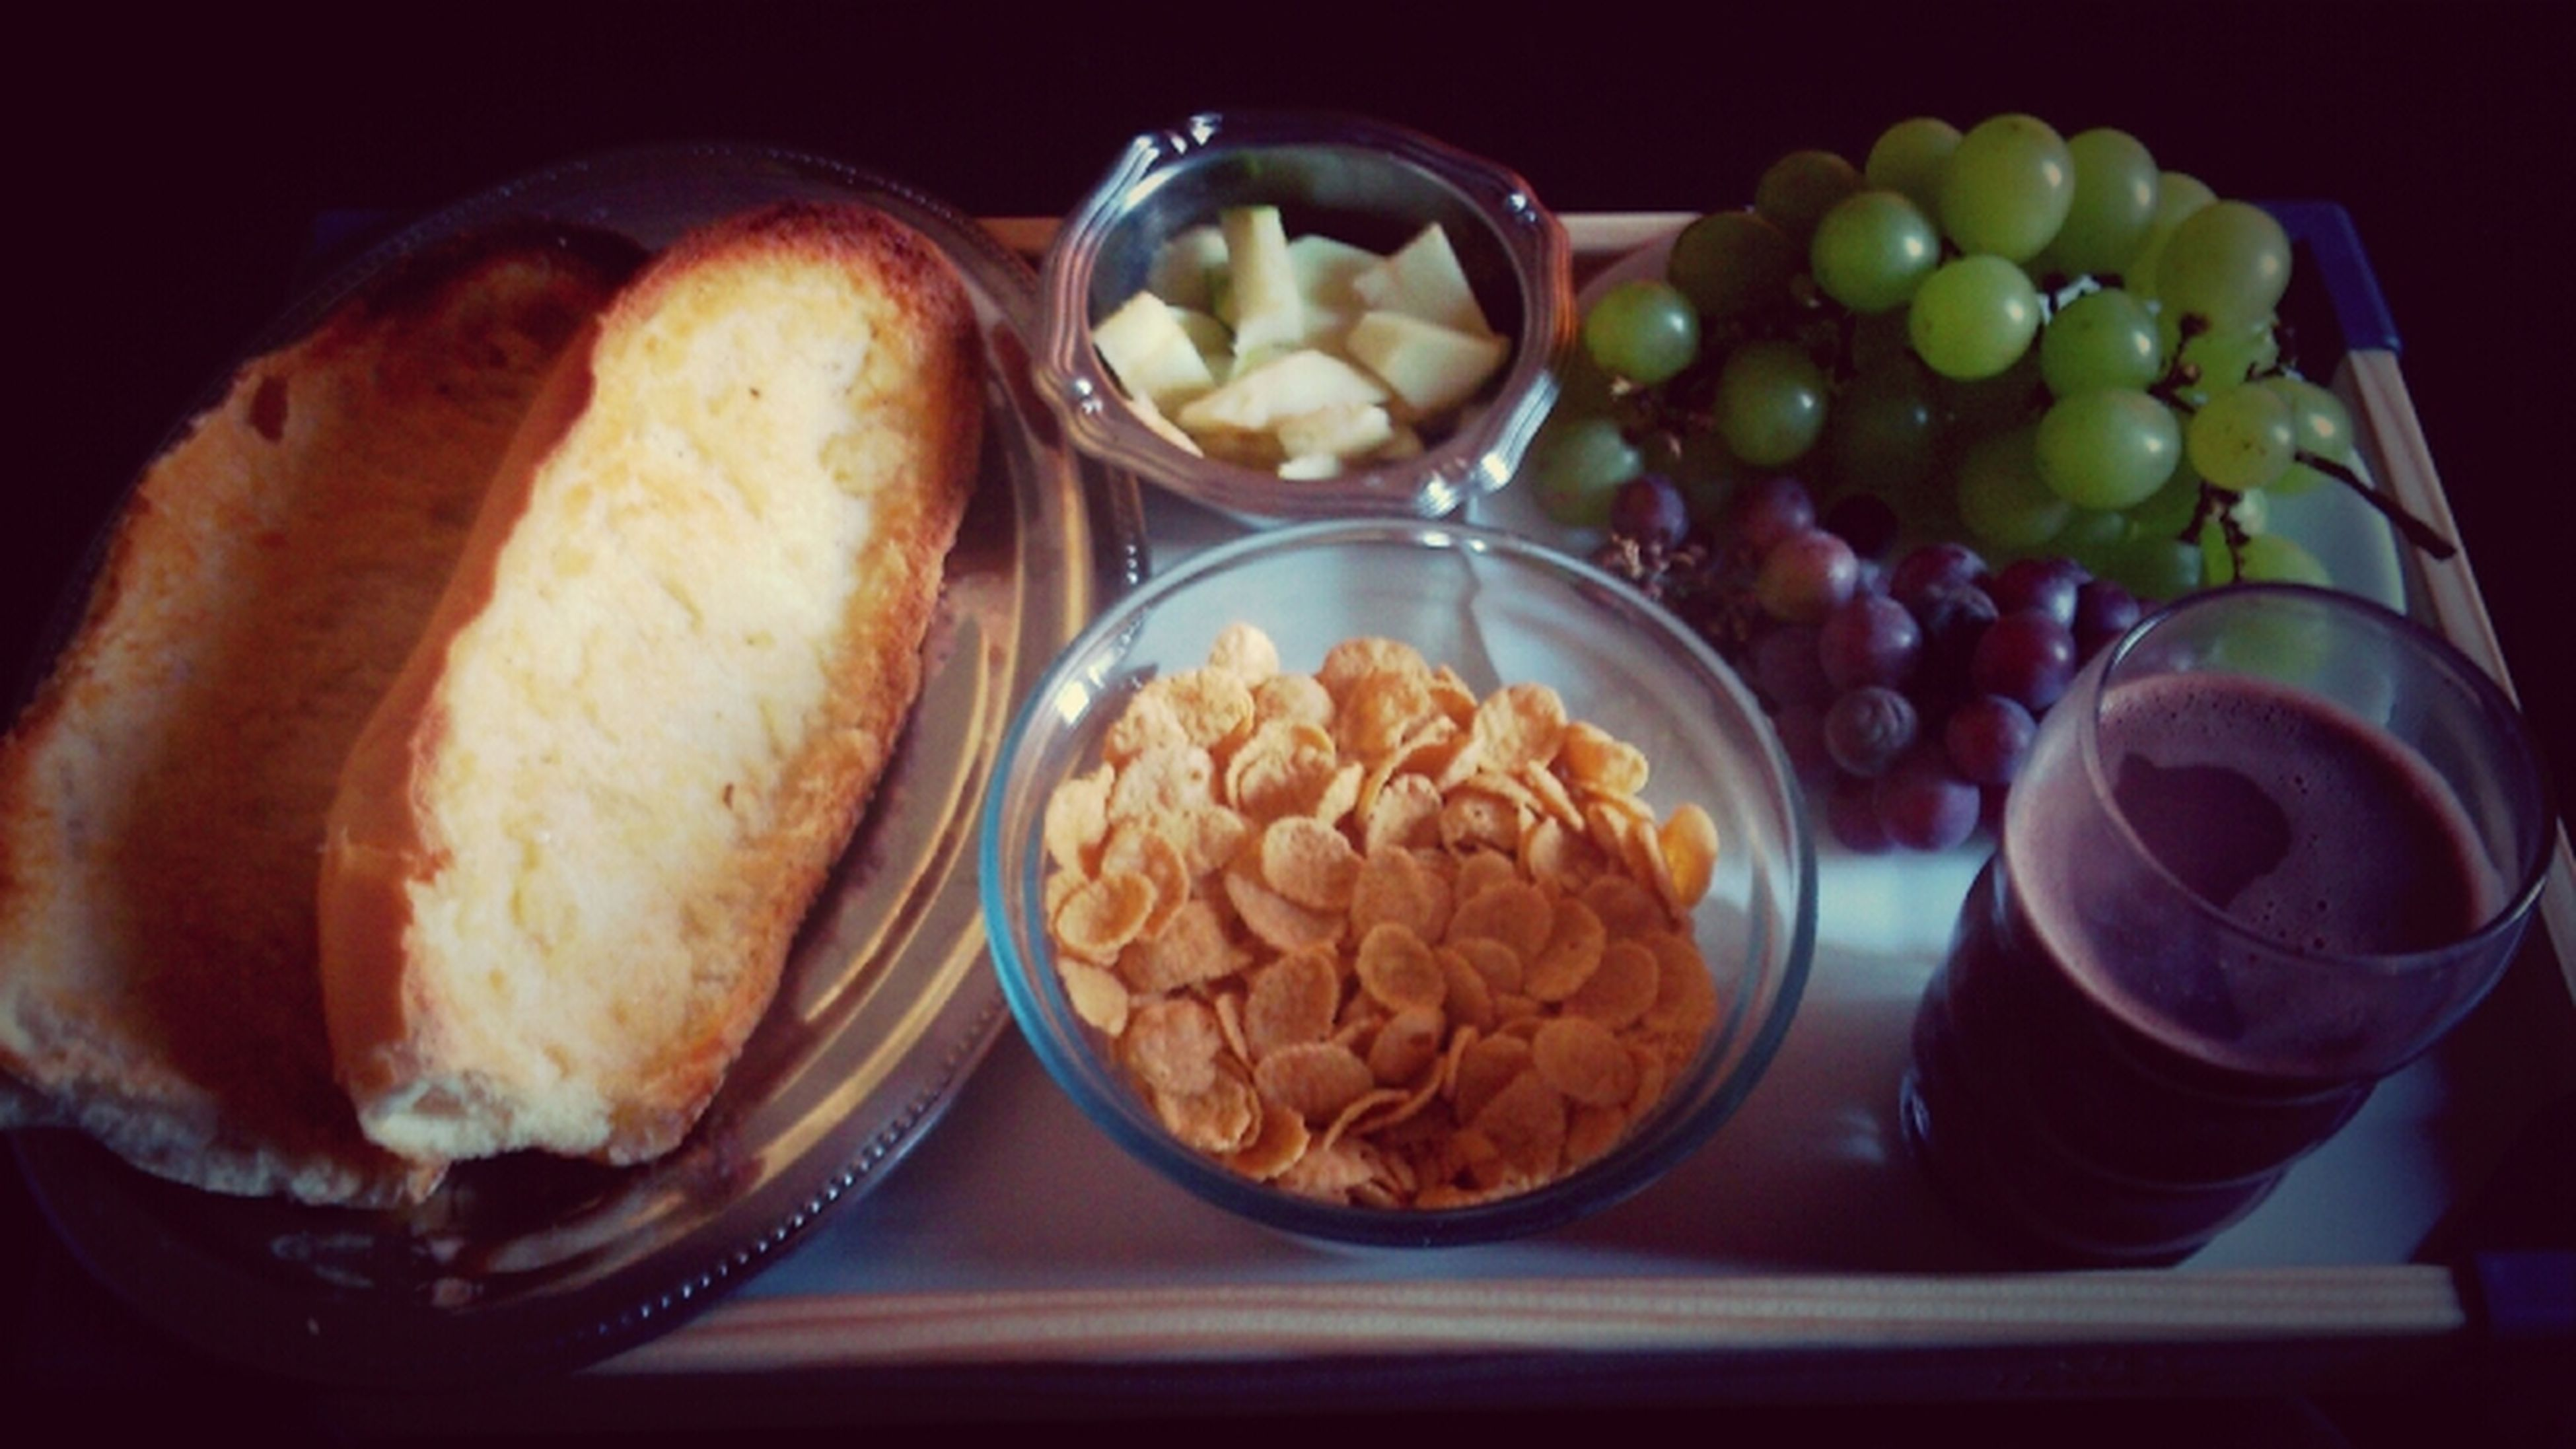 food and drink, food, freshness, indoors, still life, ready-to-eat, healthy eating, plate, table, bowl, indulgence, high angle view, sweet food, serving size, close-up, meal, dessert, fruit, no people, breakfast